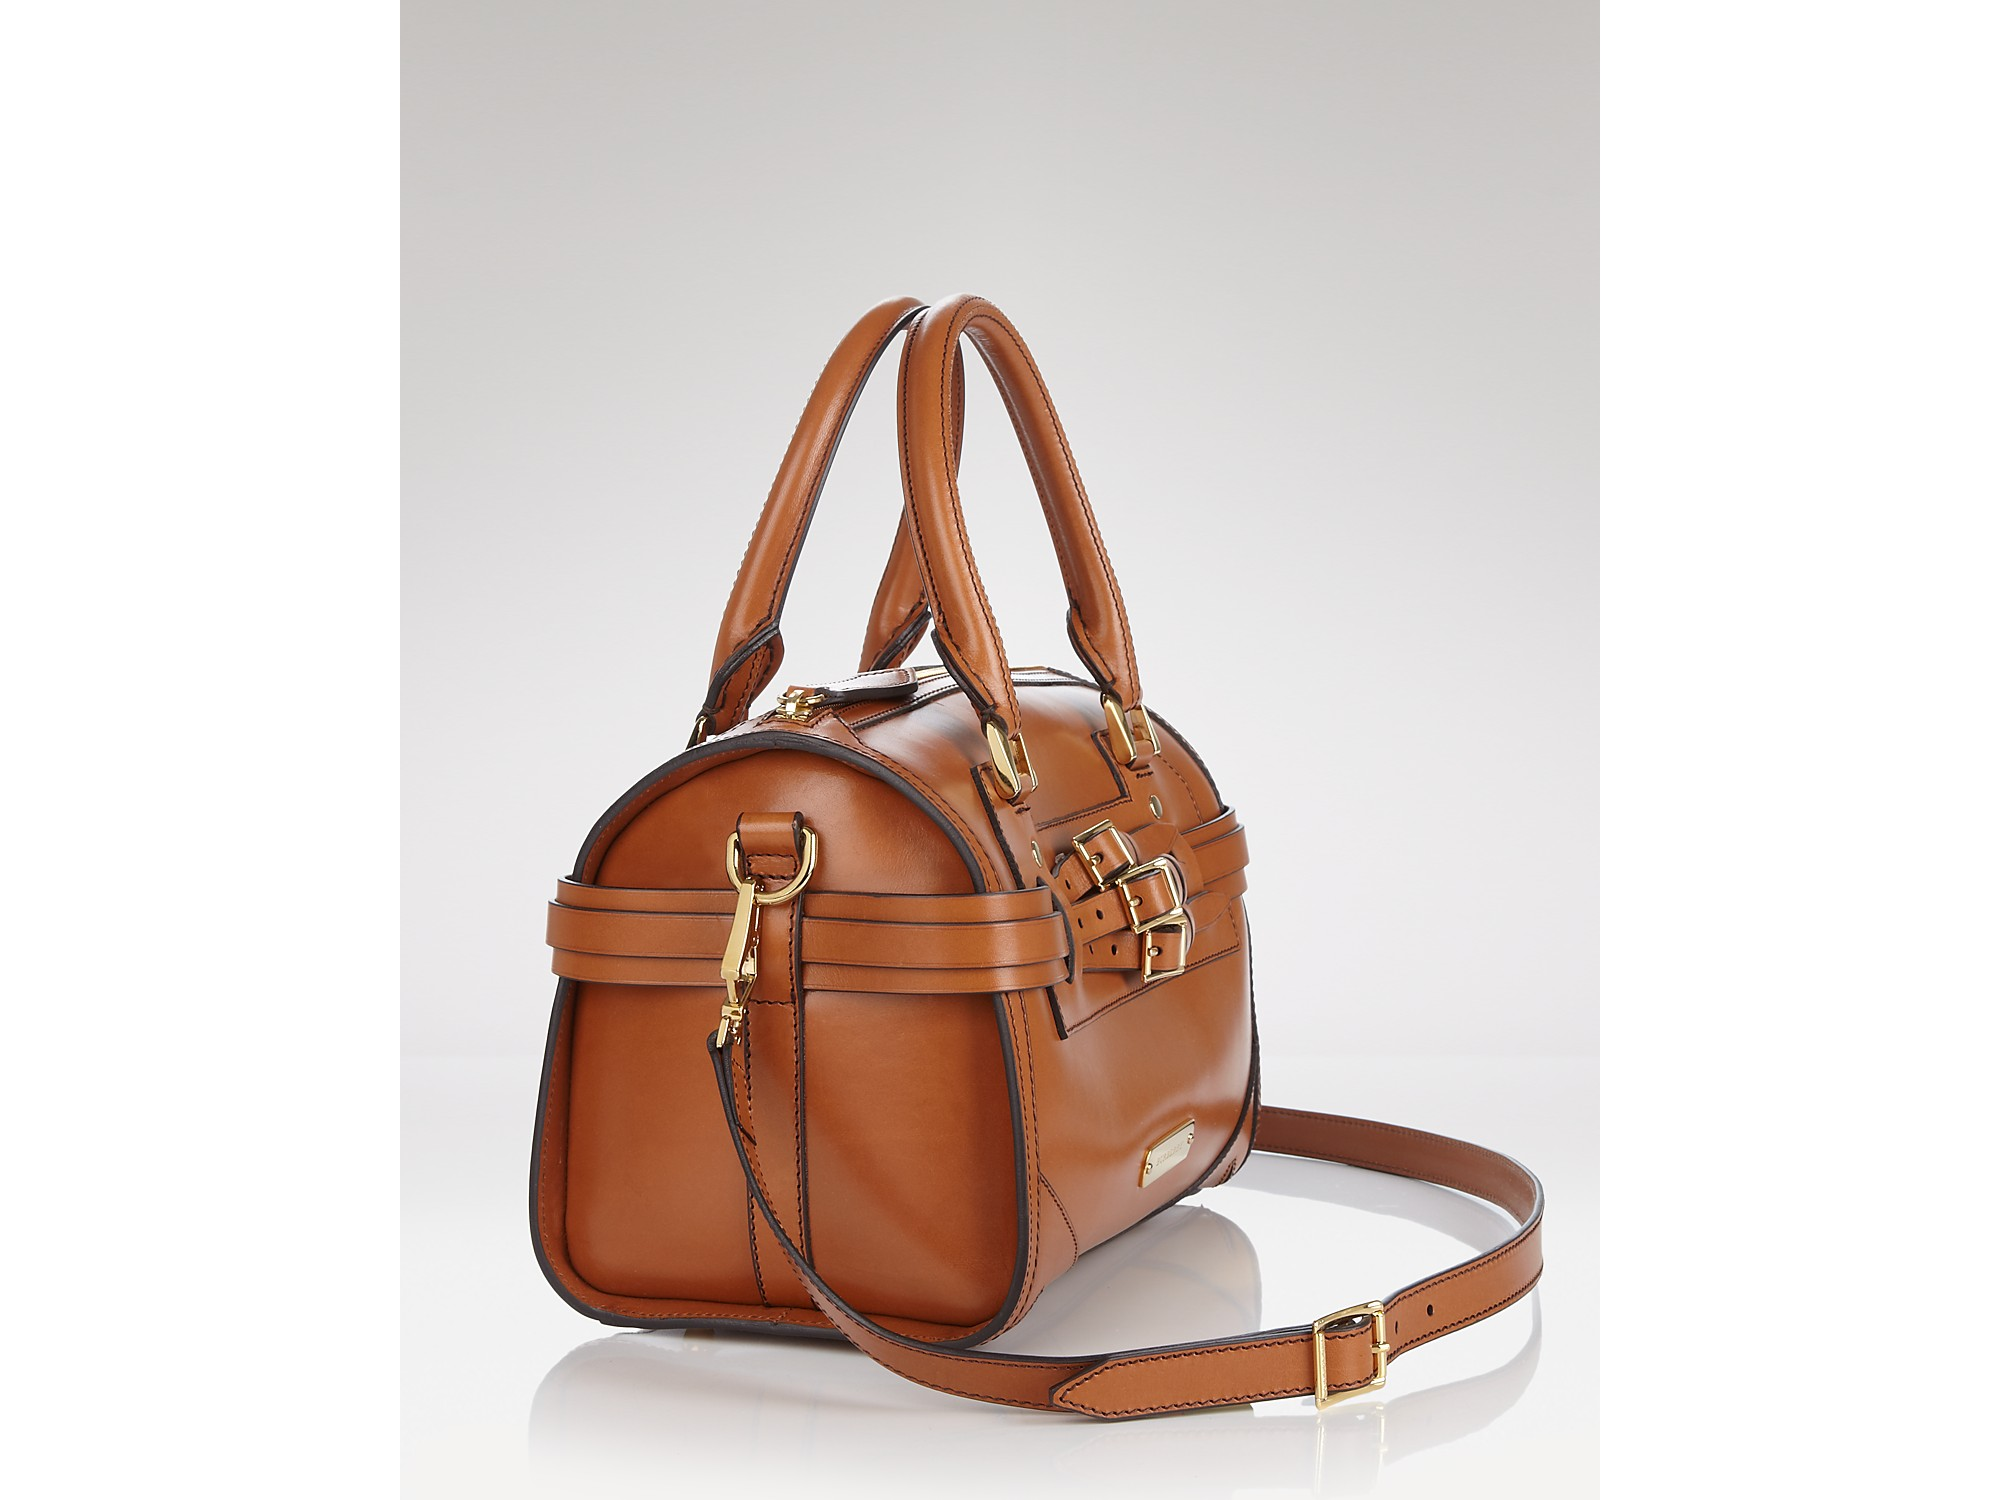 Lyst - Burberry Satchel Bridle Leather Medium Alchester in Brown 18d5d91e68ae1